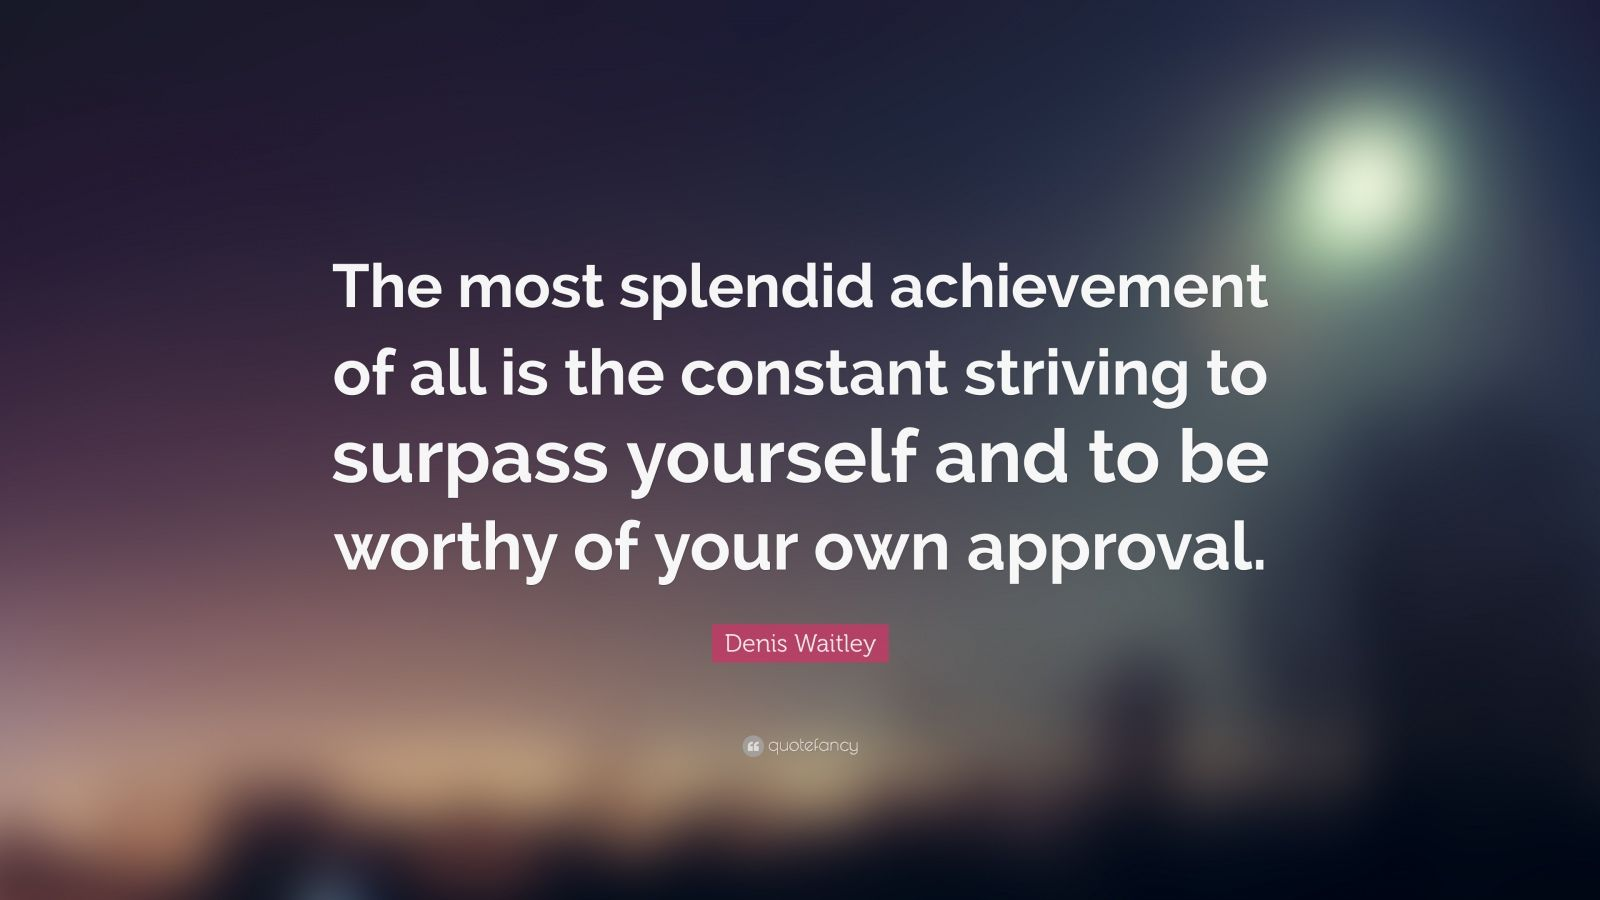 """Denis Waitley Quote: """"The most splendid achievement of all is the constant striving to surpass yourself and to be worthy of your own approval."""""""